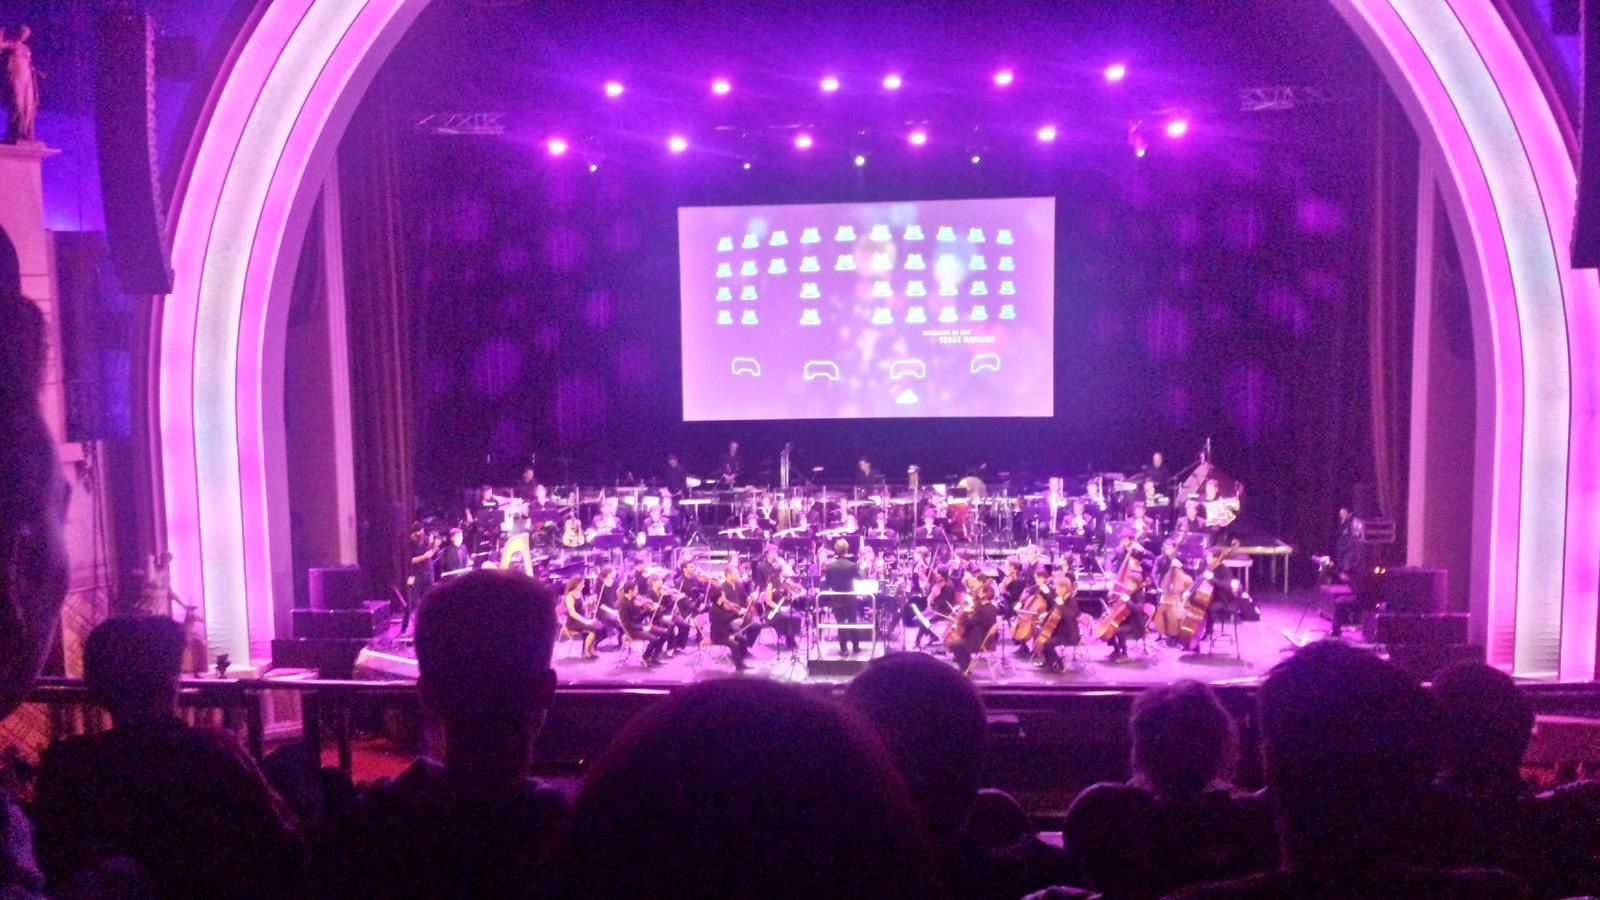 Filme Rayman throughout paris games week symphonic] un moment magique et inoubliable - le